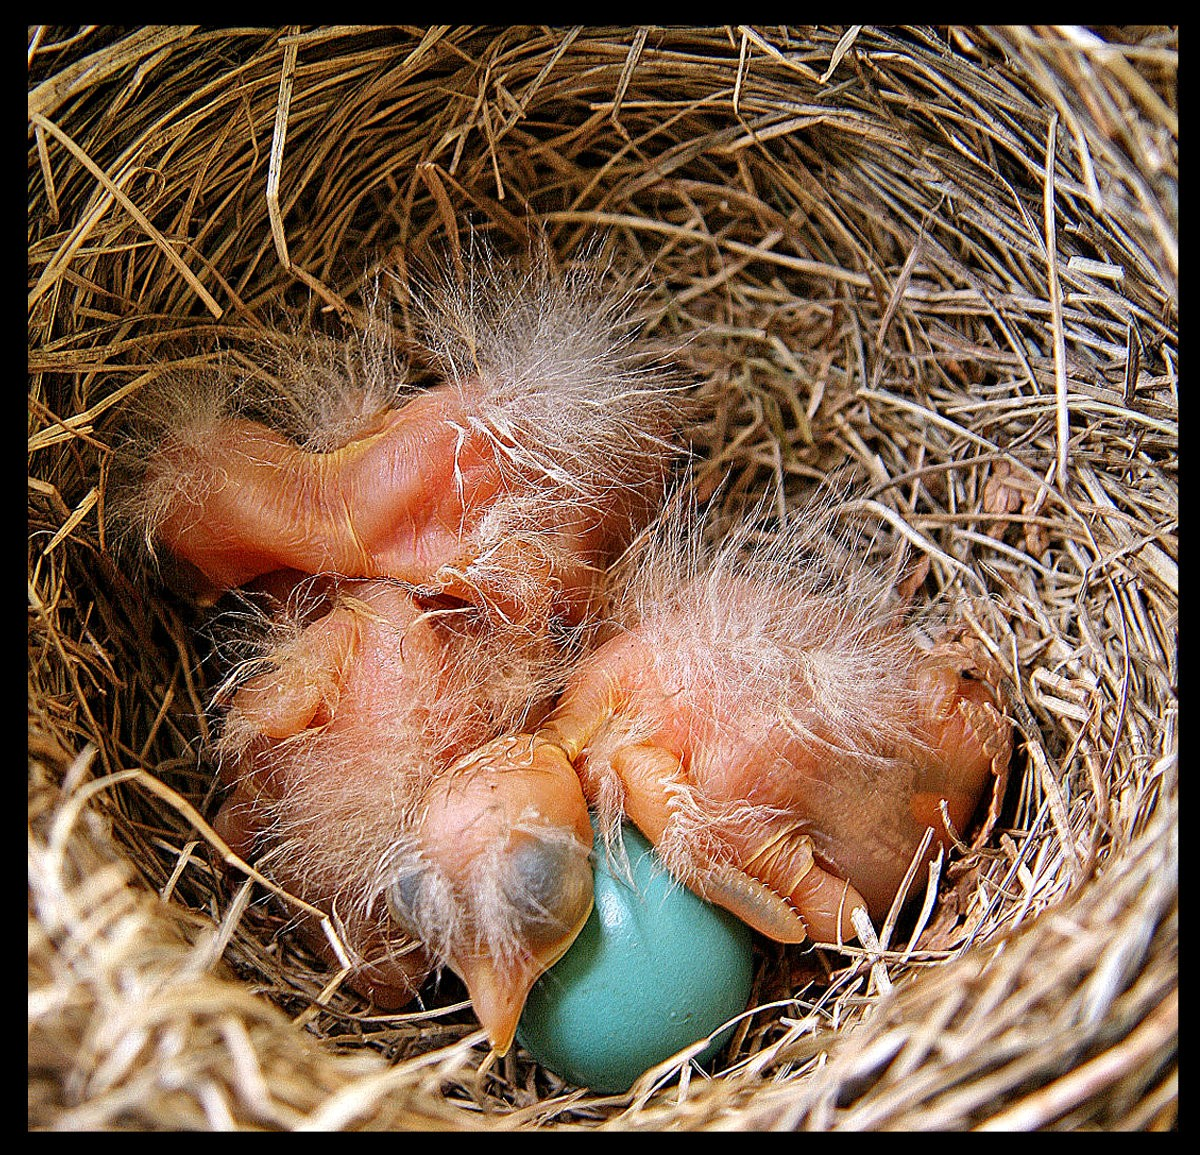 fragile new life for the born robins author p pluskwik paul